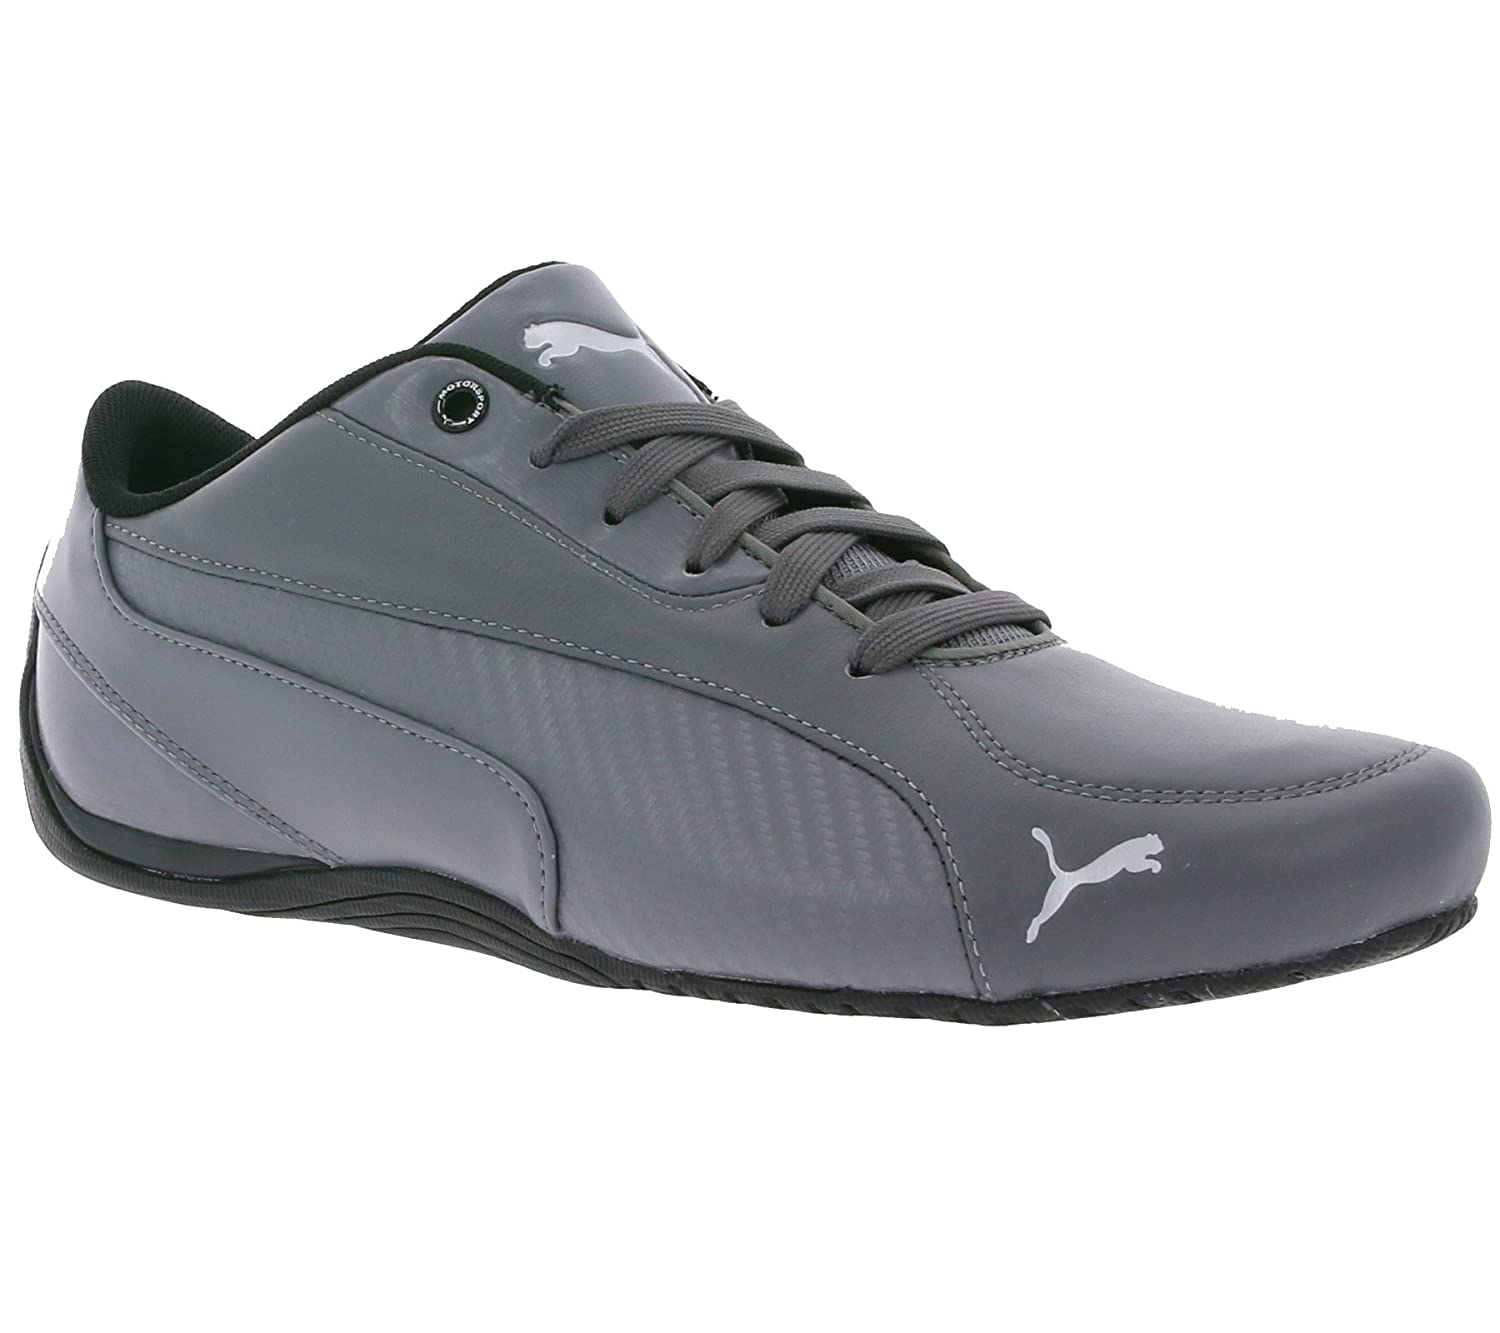 Puma Drift Cat 5 Carbon, Zapatillas de Deporte Exterior Unisex Adulto